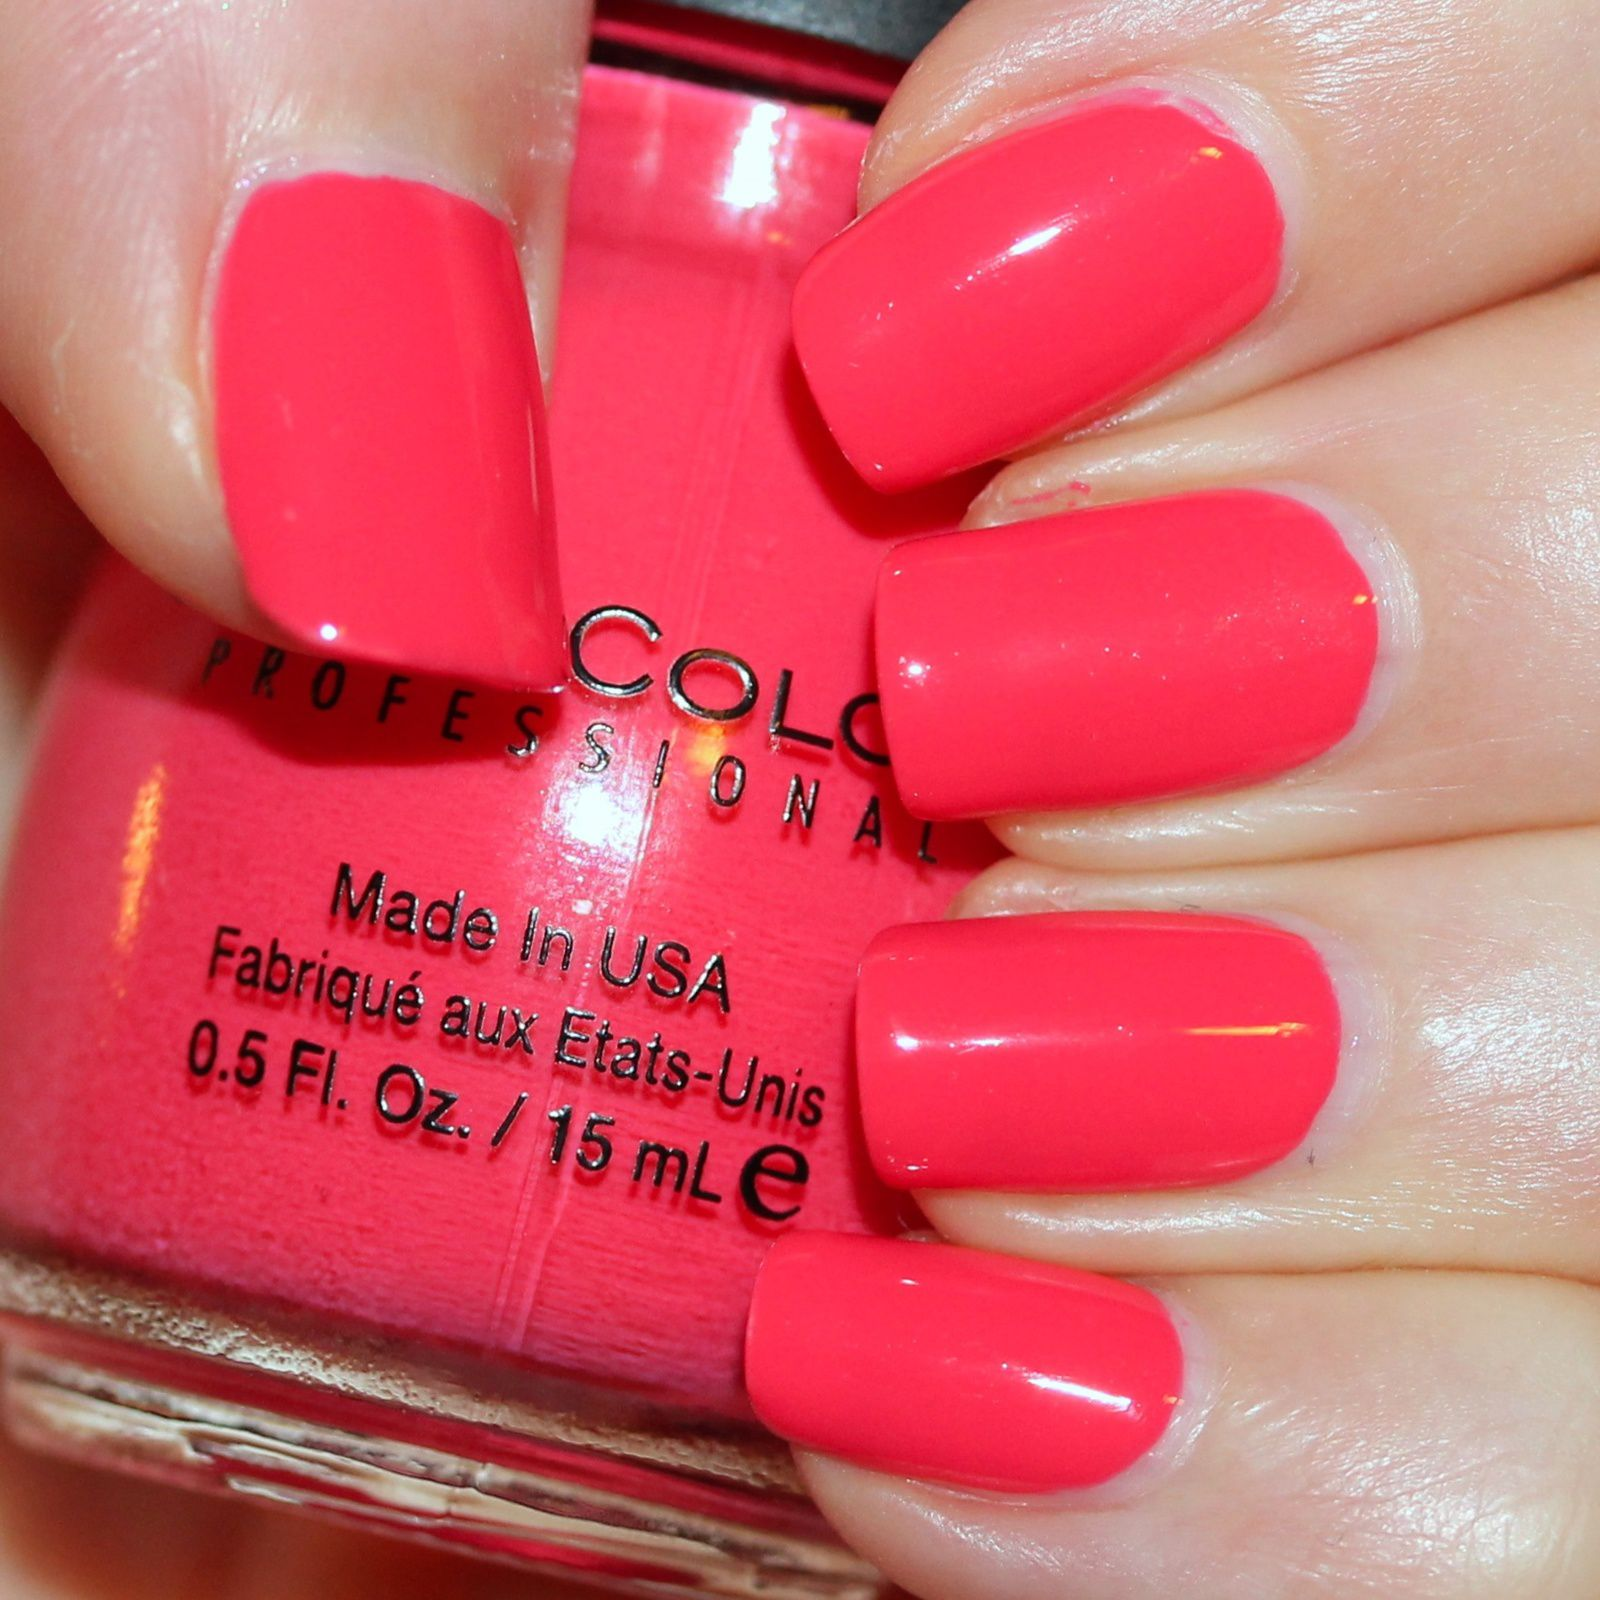 Duri Rejuvacote / Sinful Colors Eva so Bright / HK Girl Top Coat